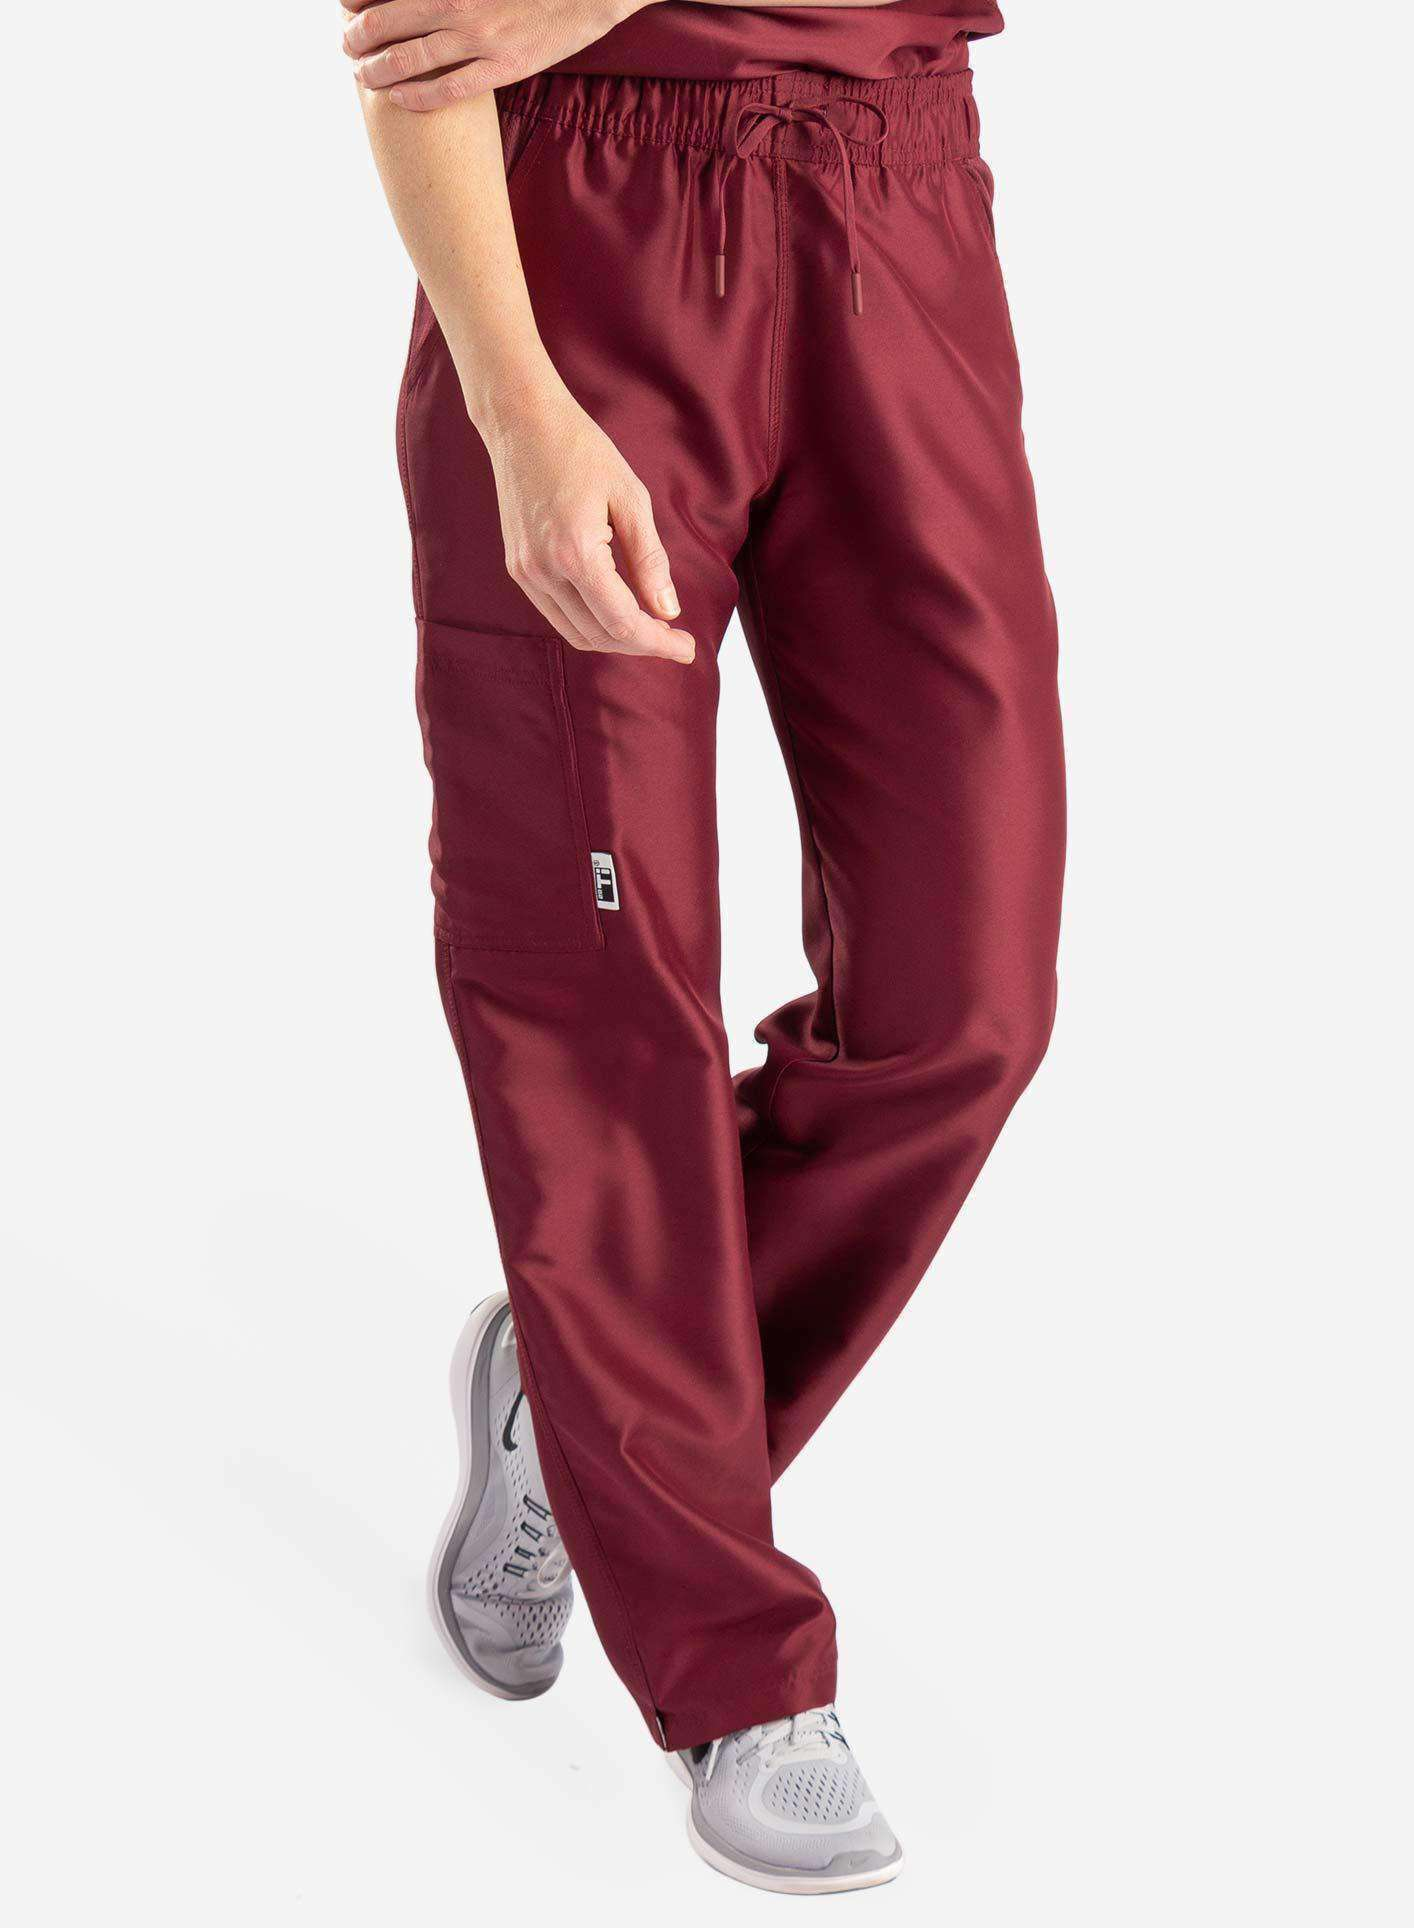 womens Elements cargo pocket straight leg scrub pants bold burgundy front